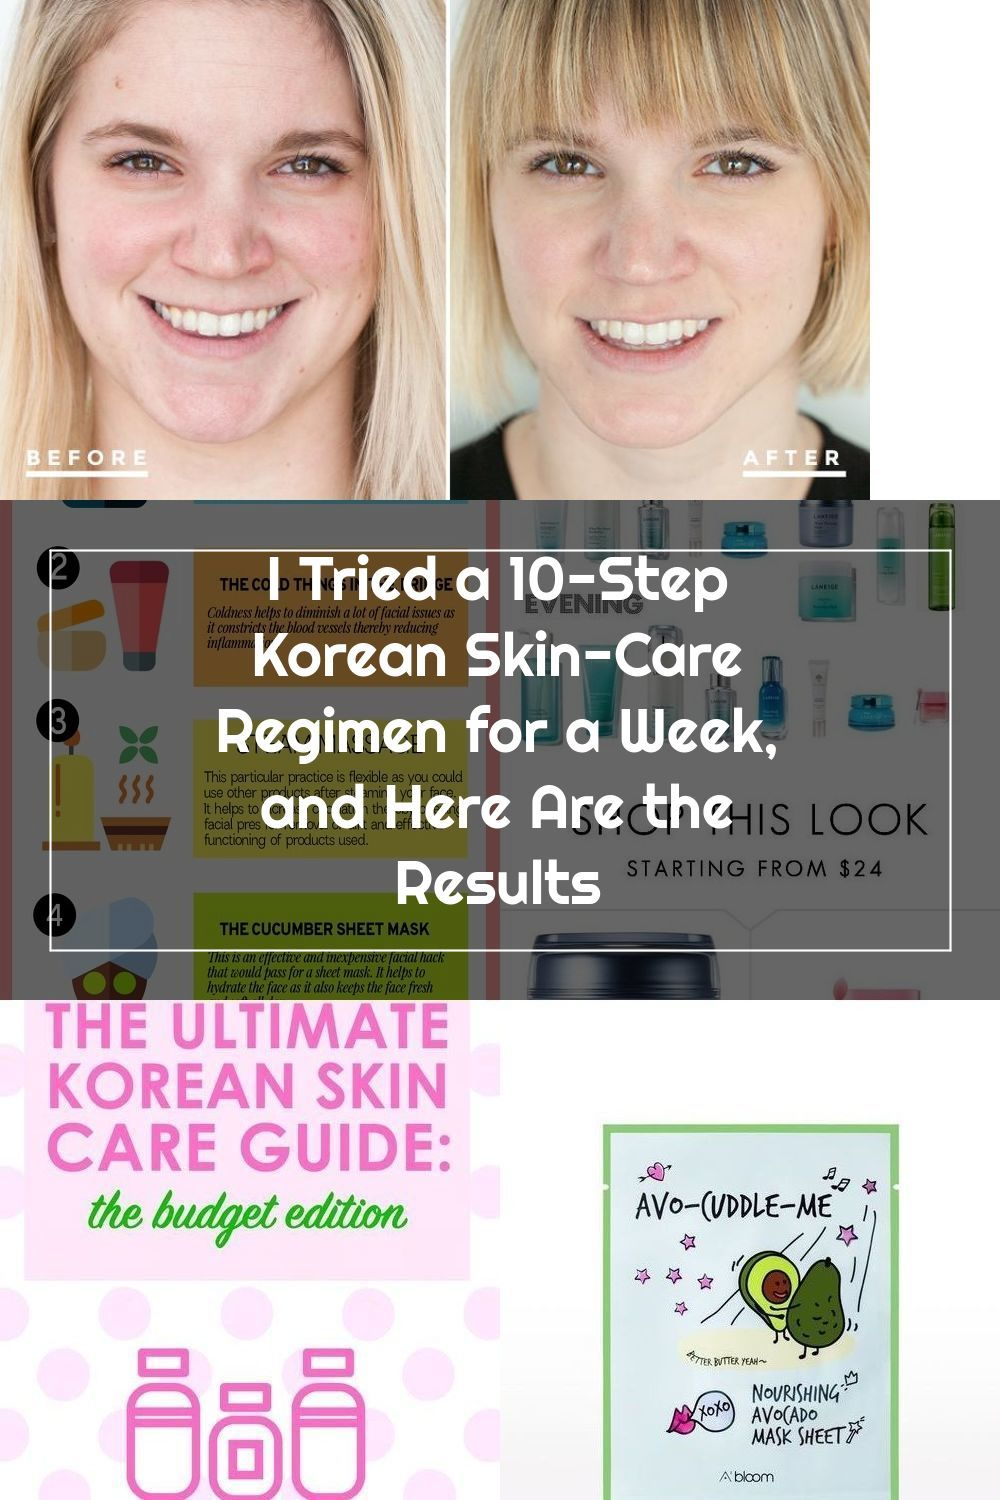 I Tried A 10 Step Korean Skincare Regimen For A Week And Here Are The Results Self In 2020 Korean 10 Step Skin Care Korean Skincare Skin Care Regimen